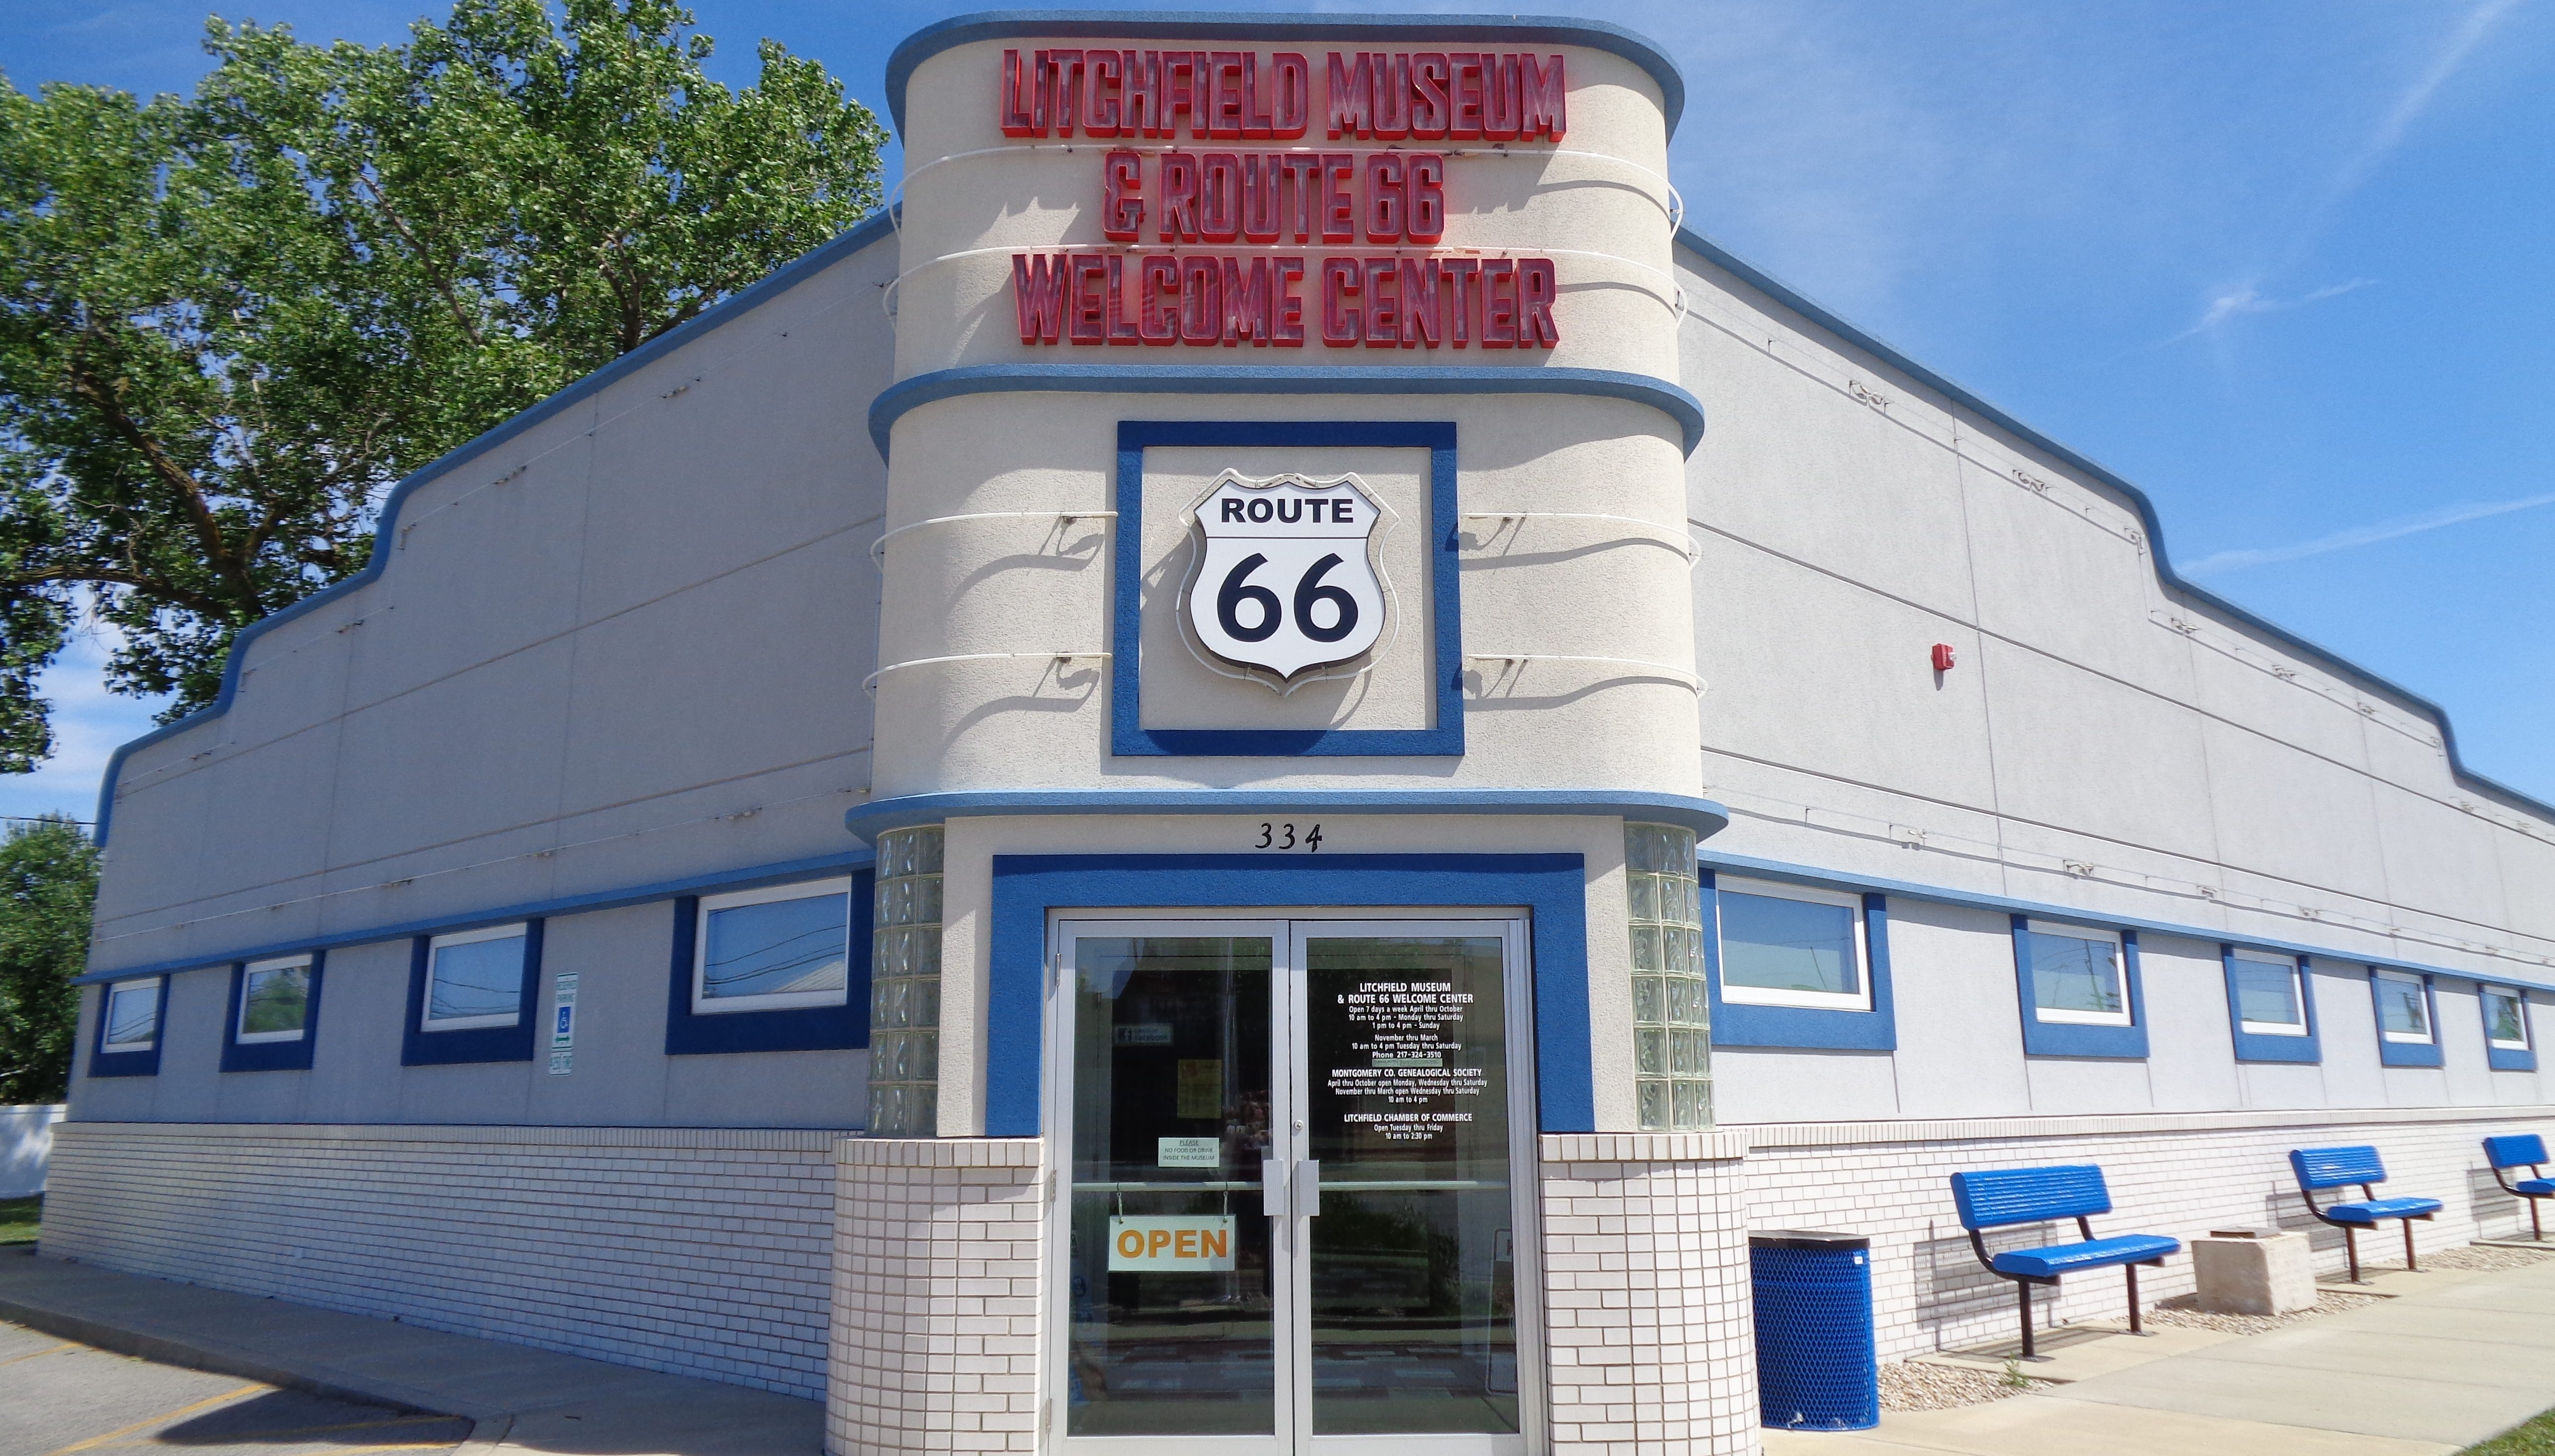 Exterior view of the Litchfield Museum & Route 66 Welcome Center